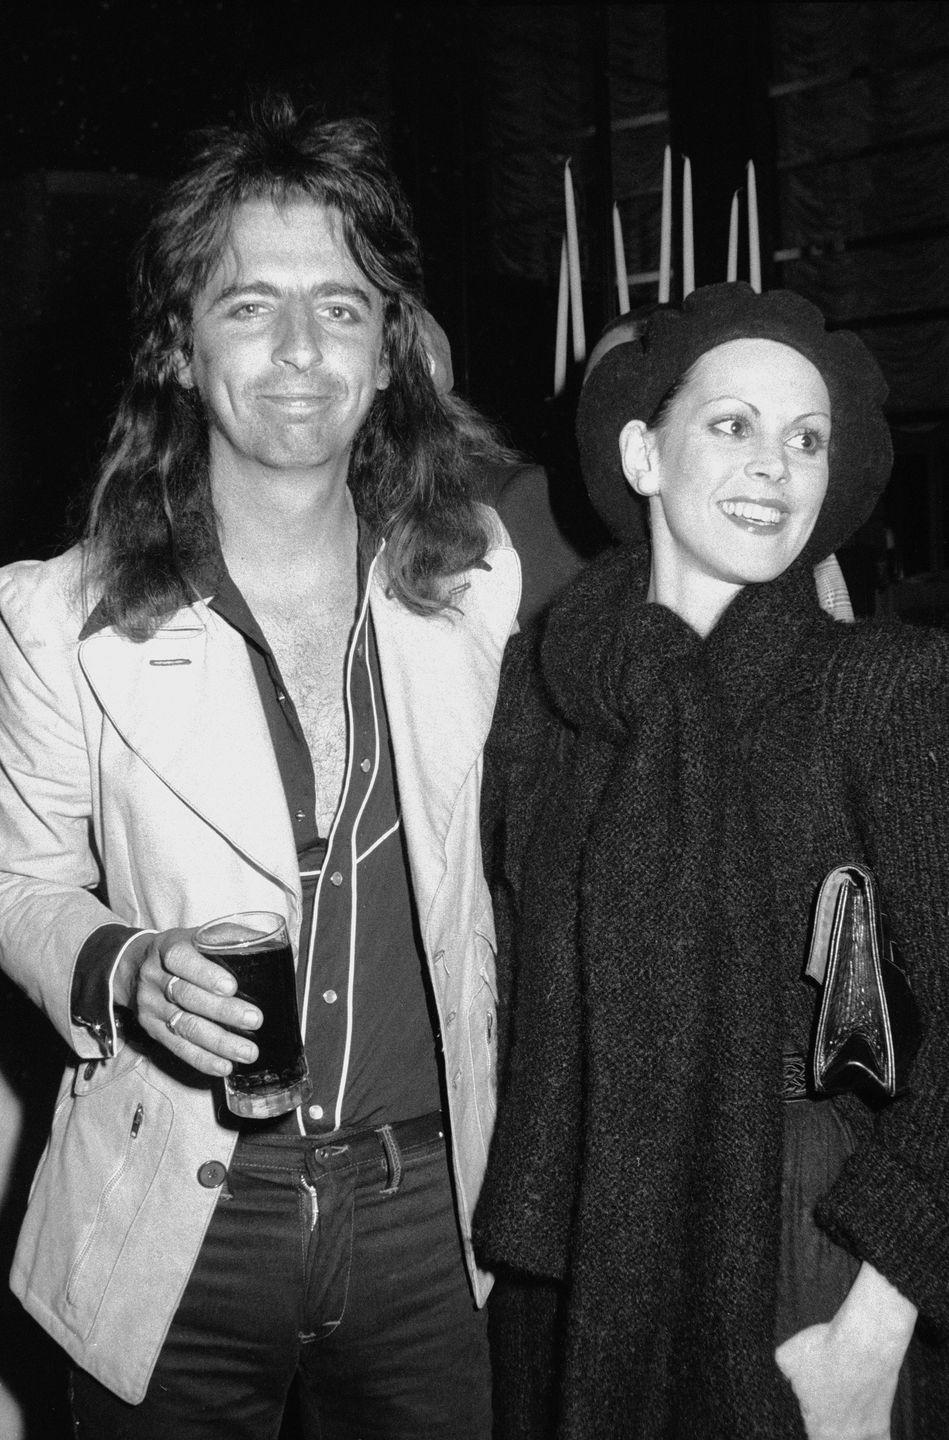 <p>Rock and roll star, Alice Cooper, helps himself to a cocktail while attending a party with girlfriend Cindy Lang in 1970. </p>